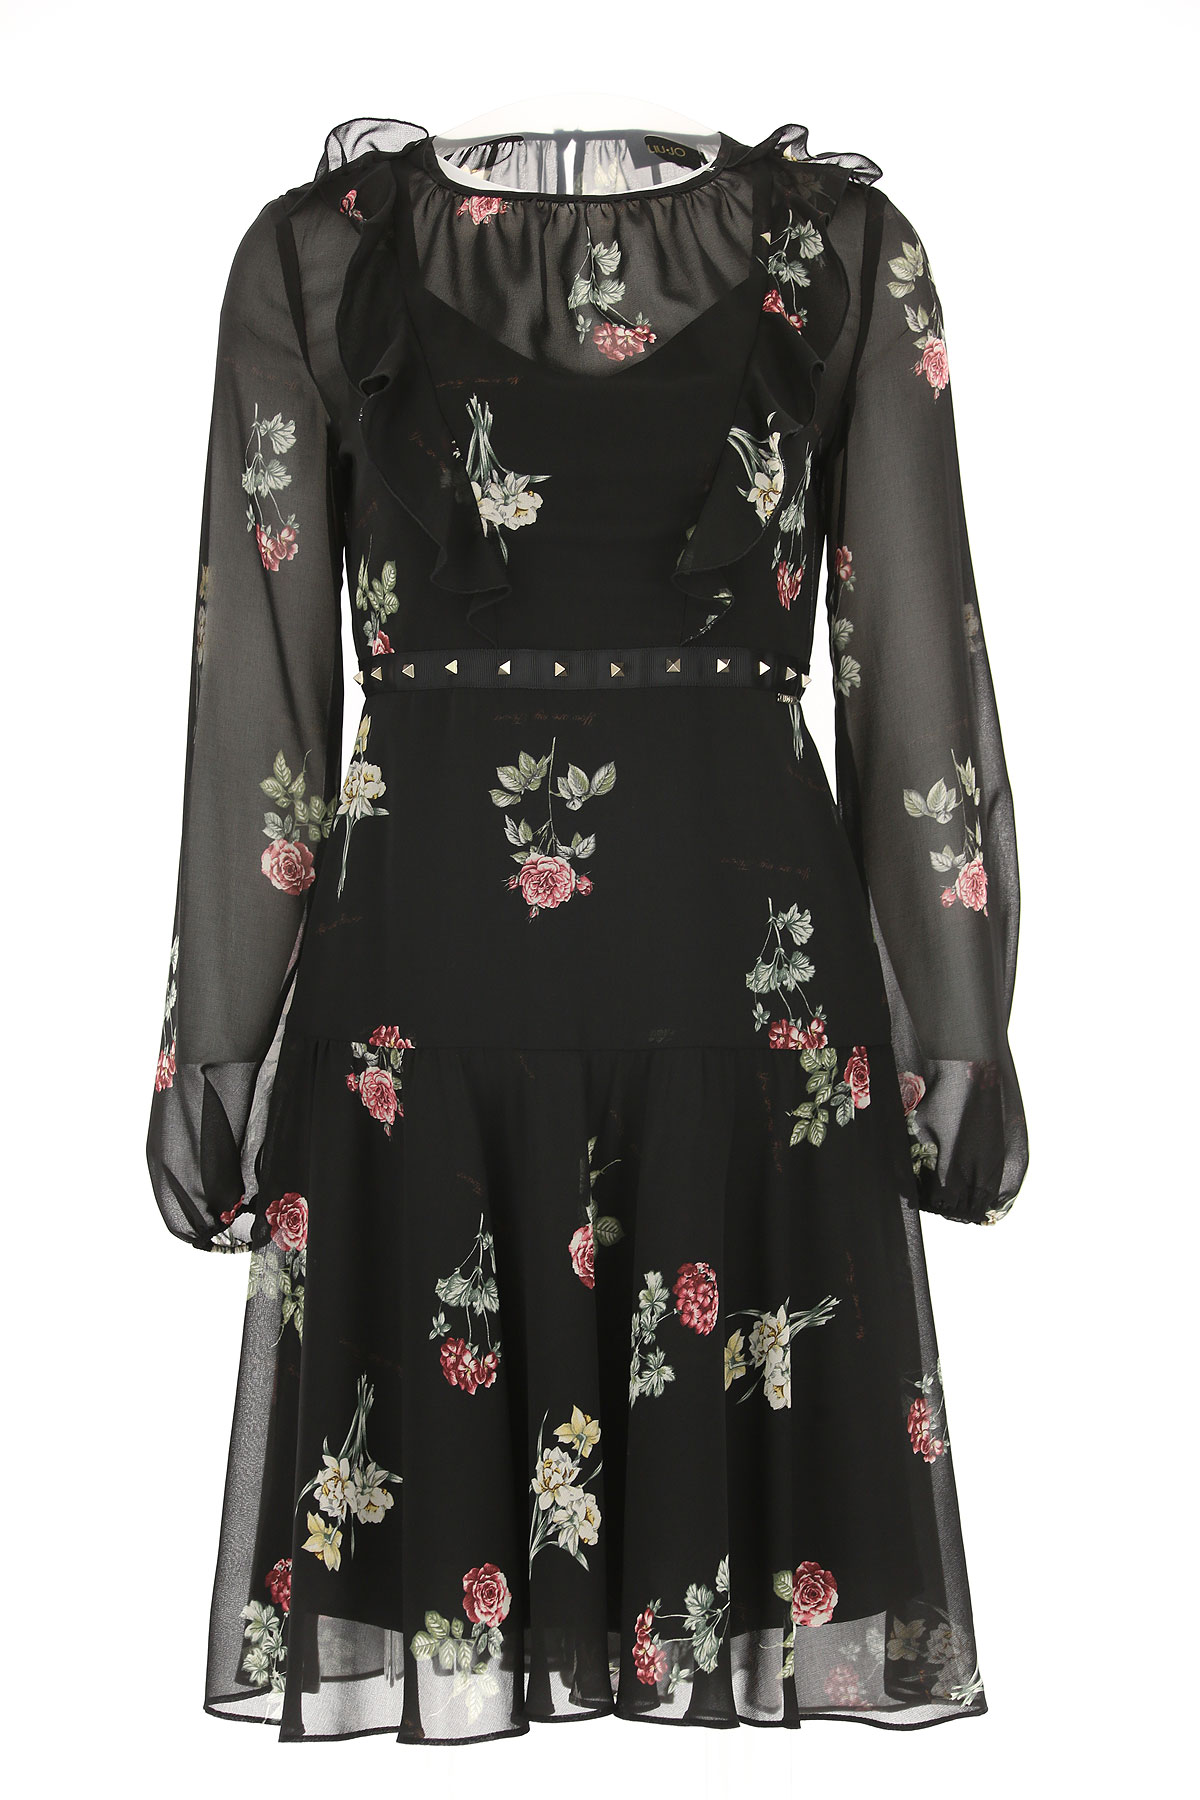 Liu Jo Dress for Women, Evening Cocktail Party, Black, polyestere, 2017, 6 8